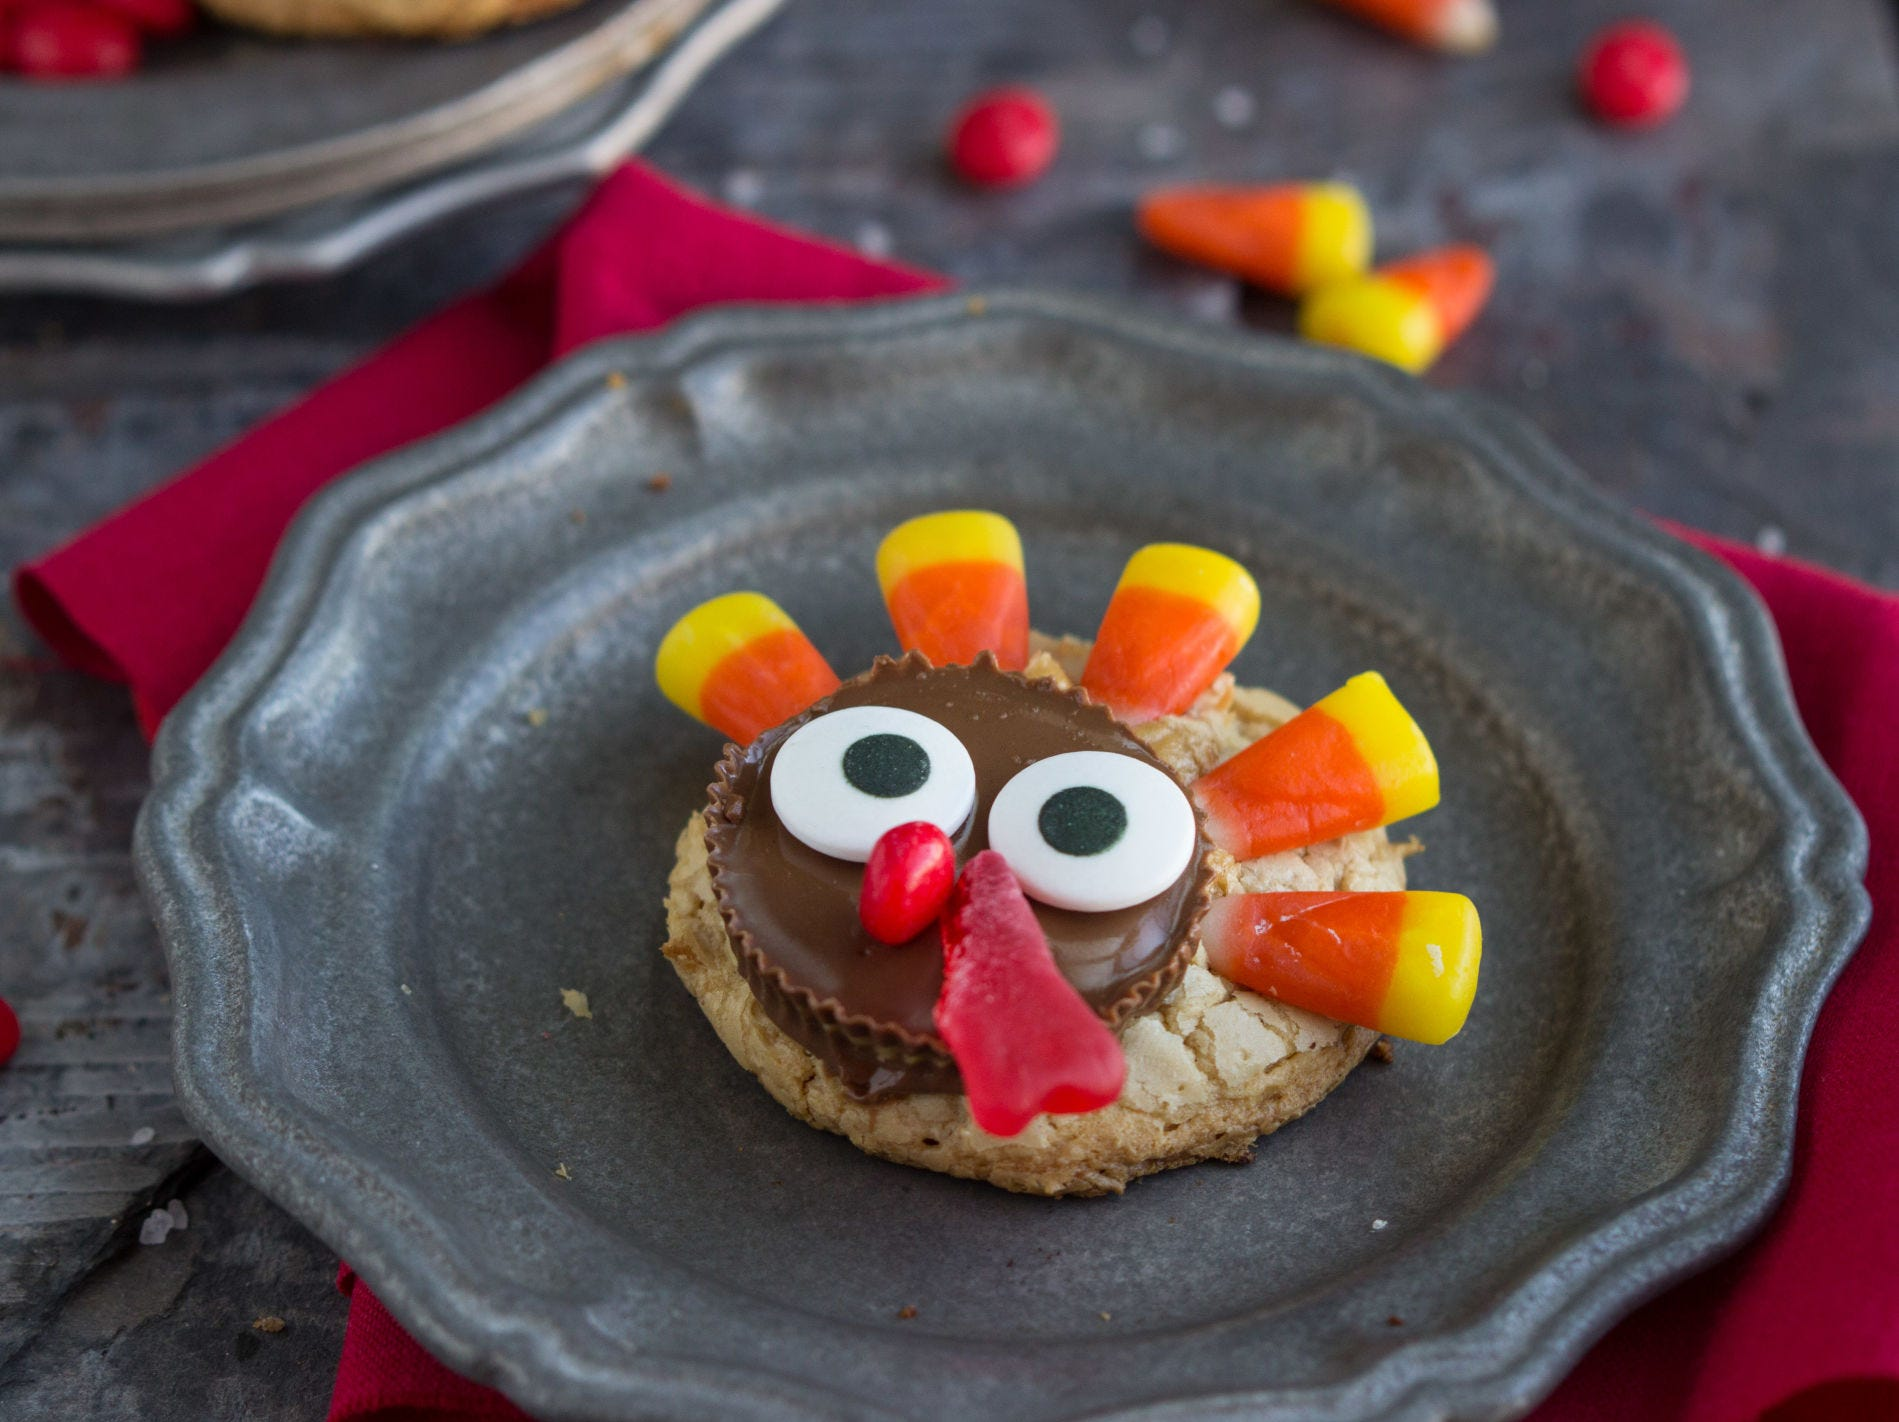 These adorable turkey-decorated peanut butter cookies will make a fun, kid-friendly Thanksgiving dessert! You can make them ahead of time to wow your Thanksgiving guests, or wait until the day-of and have the kiddos help you decorate them.